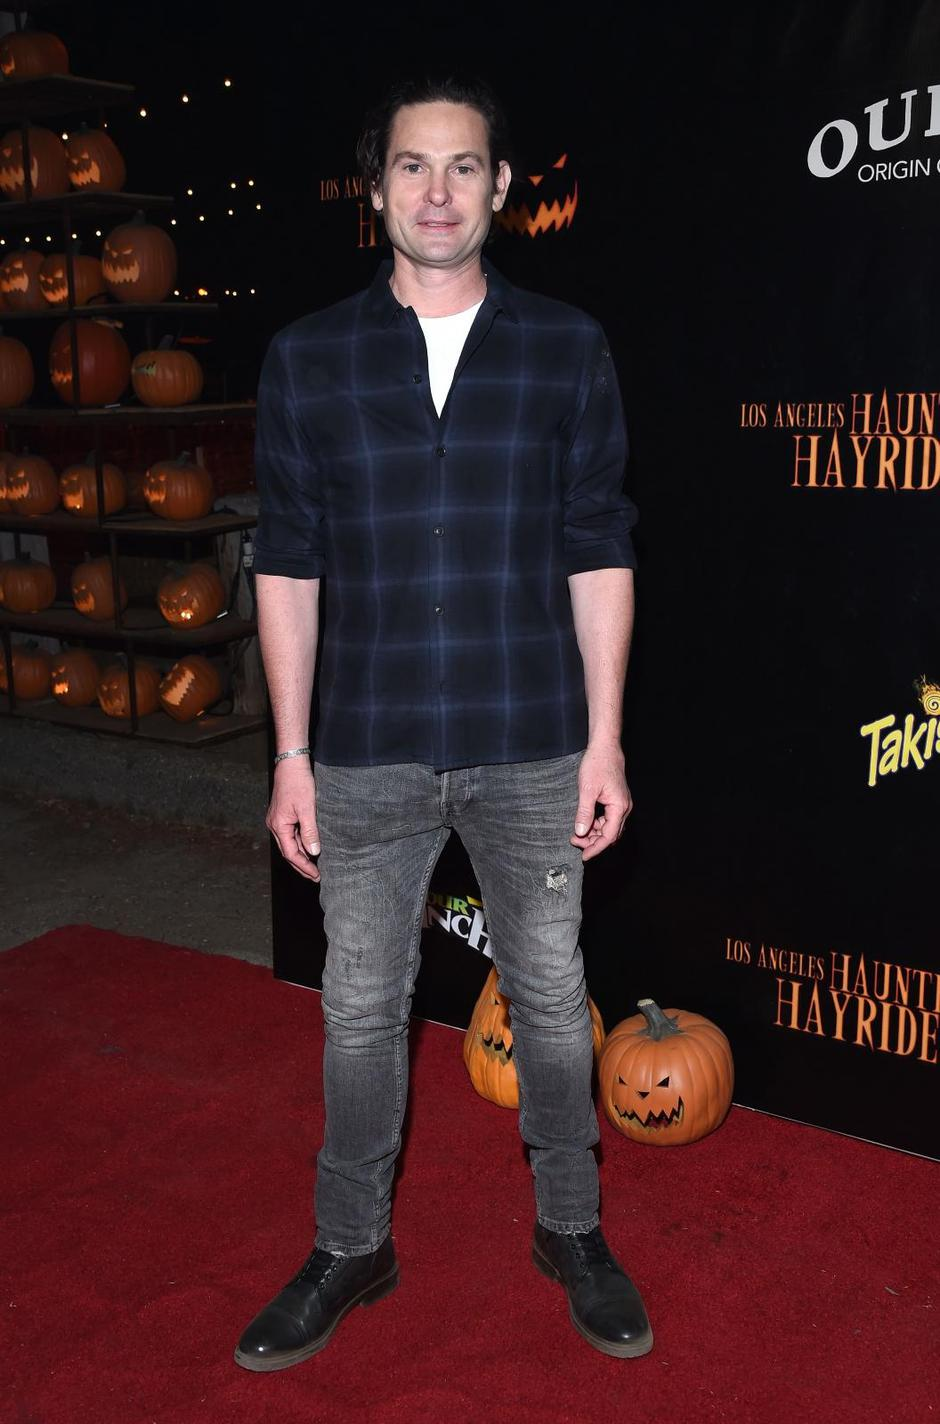 8th Annual Haunted Hayride - Los Angeles | Autor: Chase Rollins/Press Association/PIXSELL